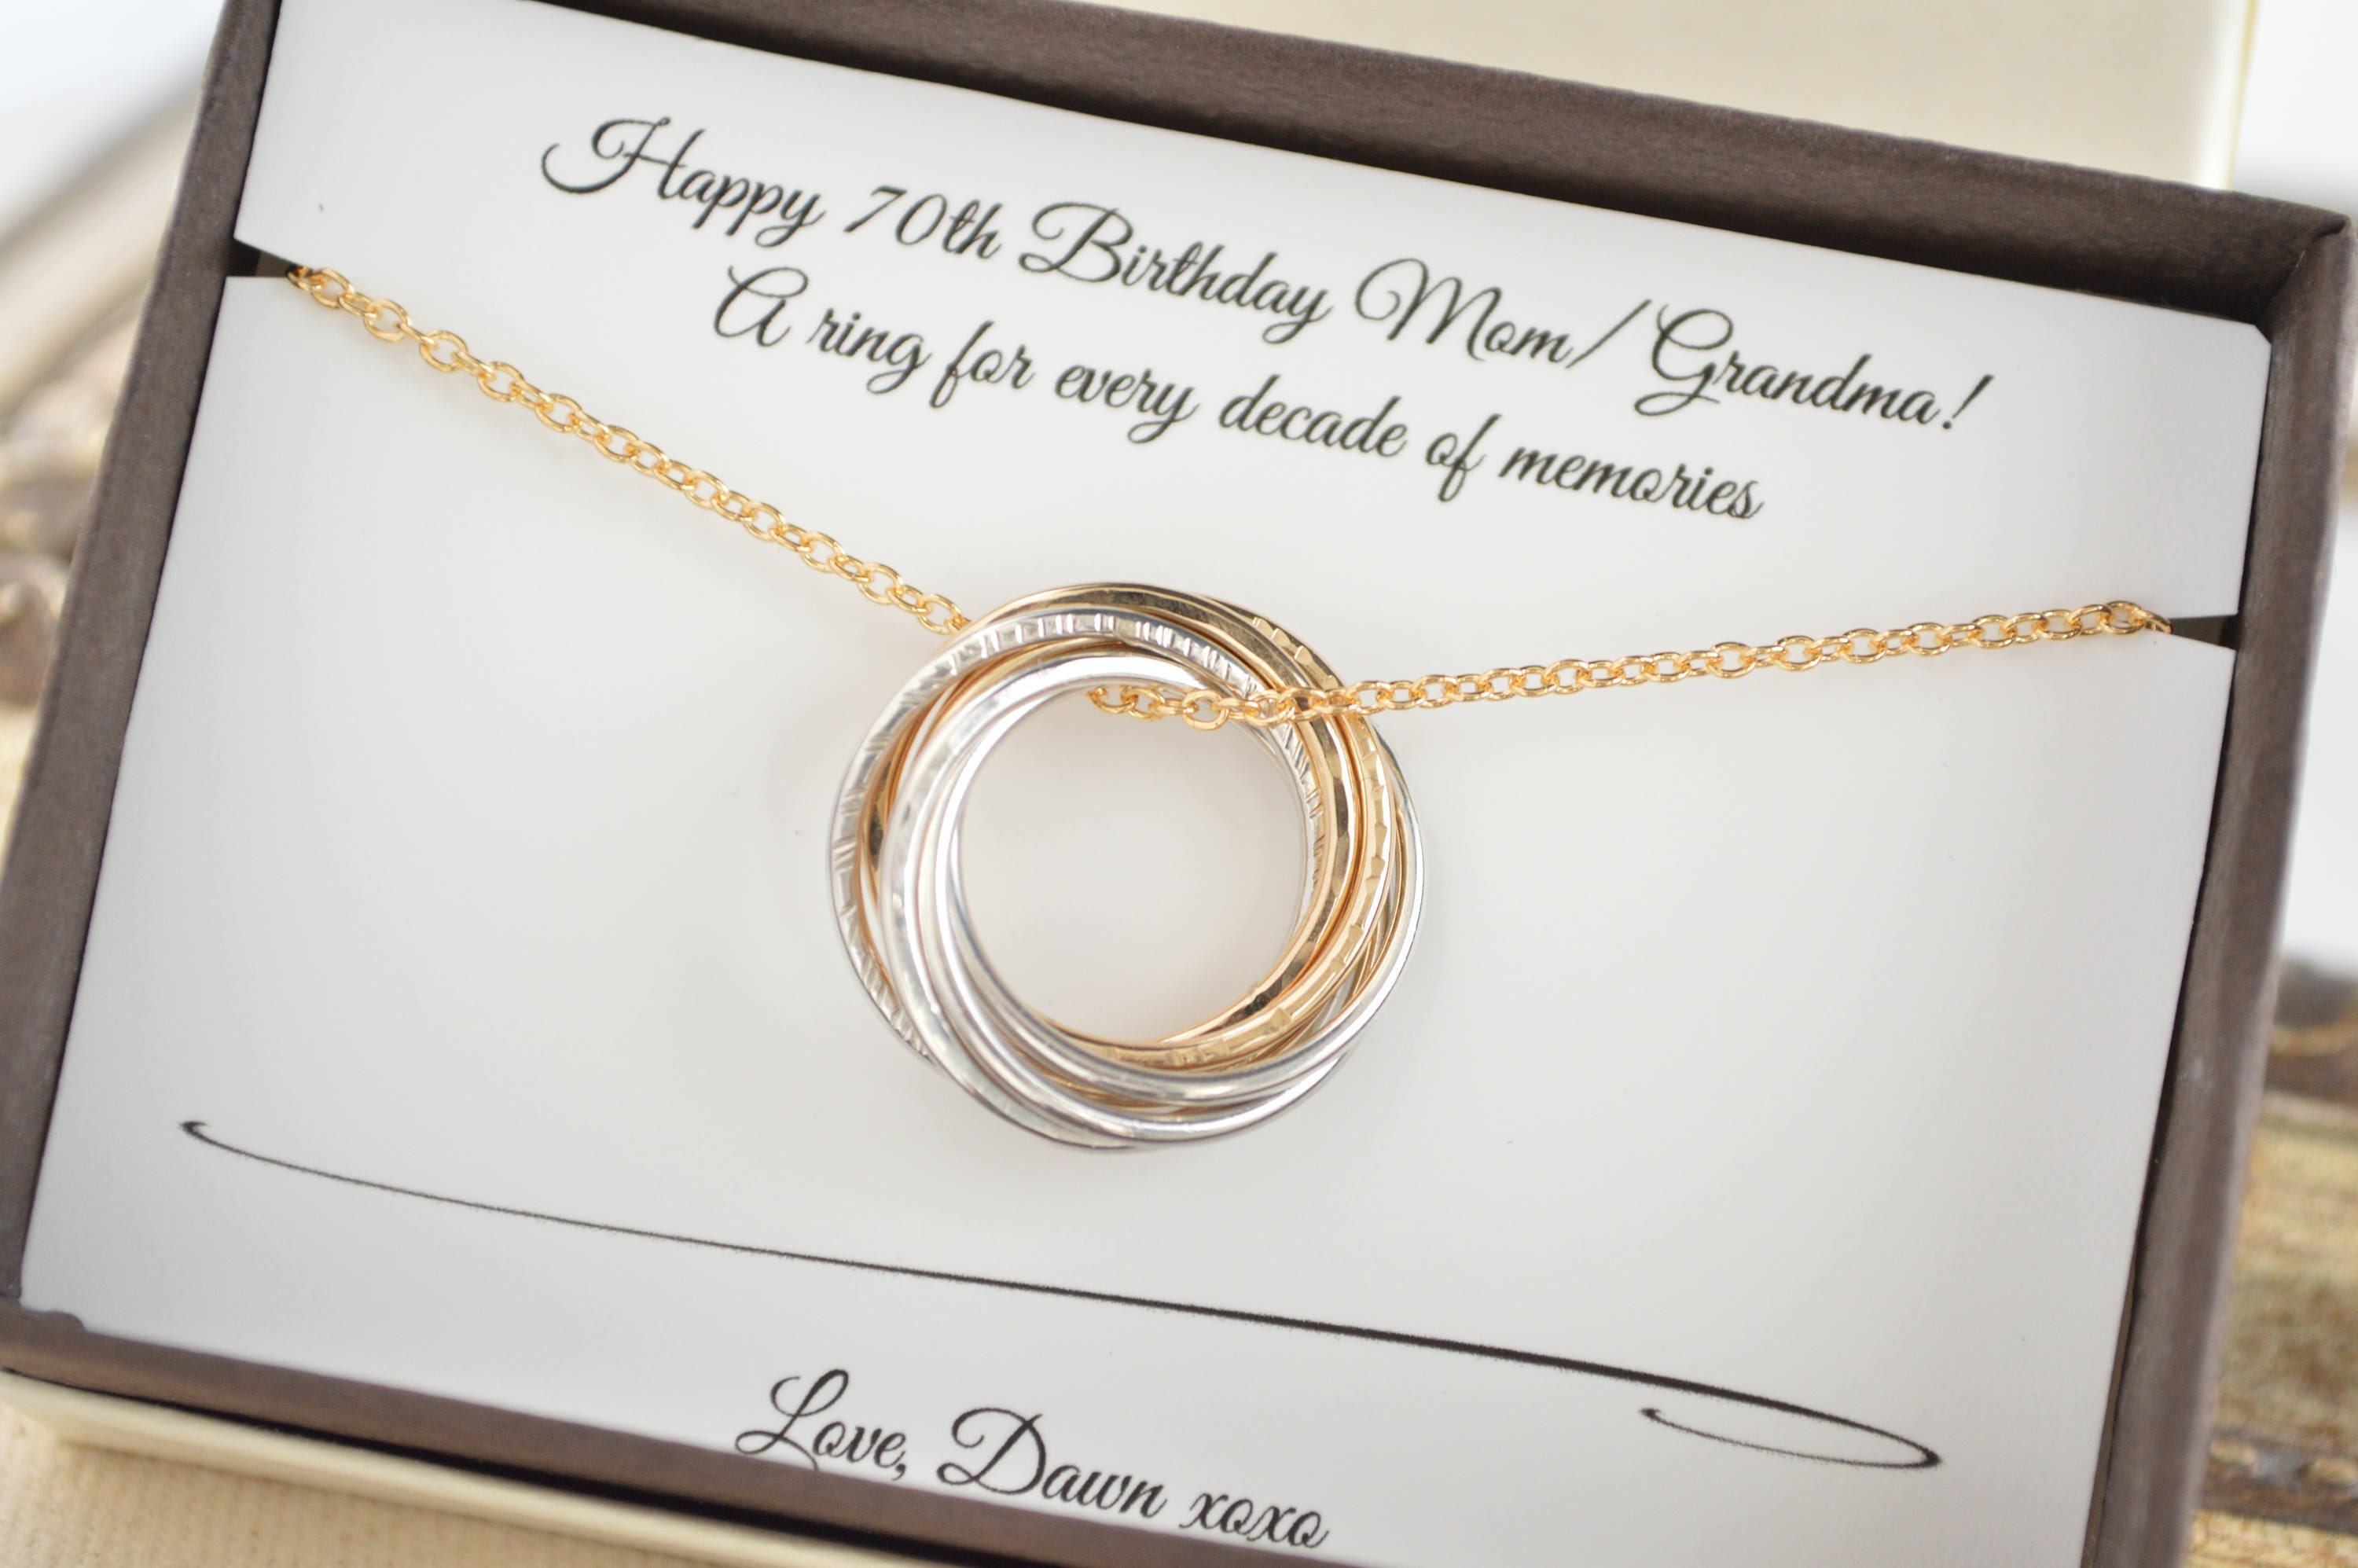 70th Birthday Gift For Mom And Grandma Necklace 7th Anniversary Wife Mixed Metals Women 7 Rings